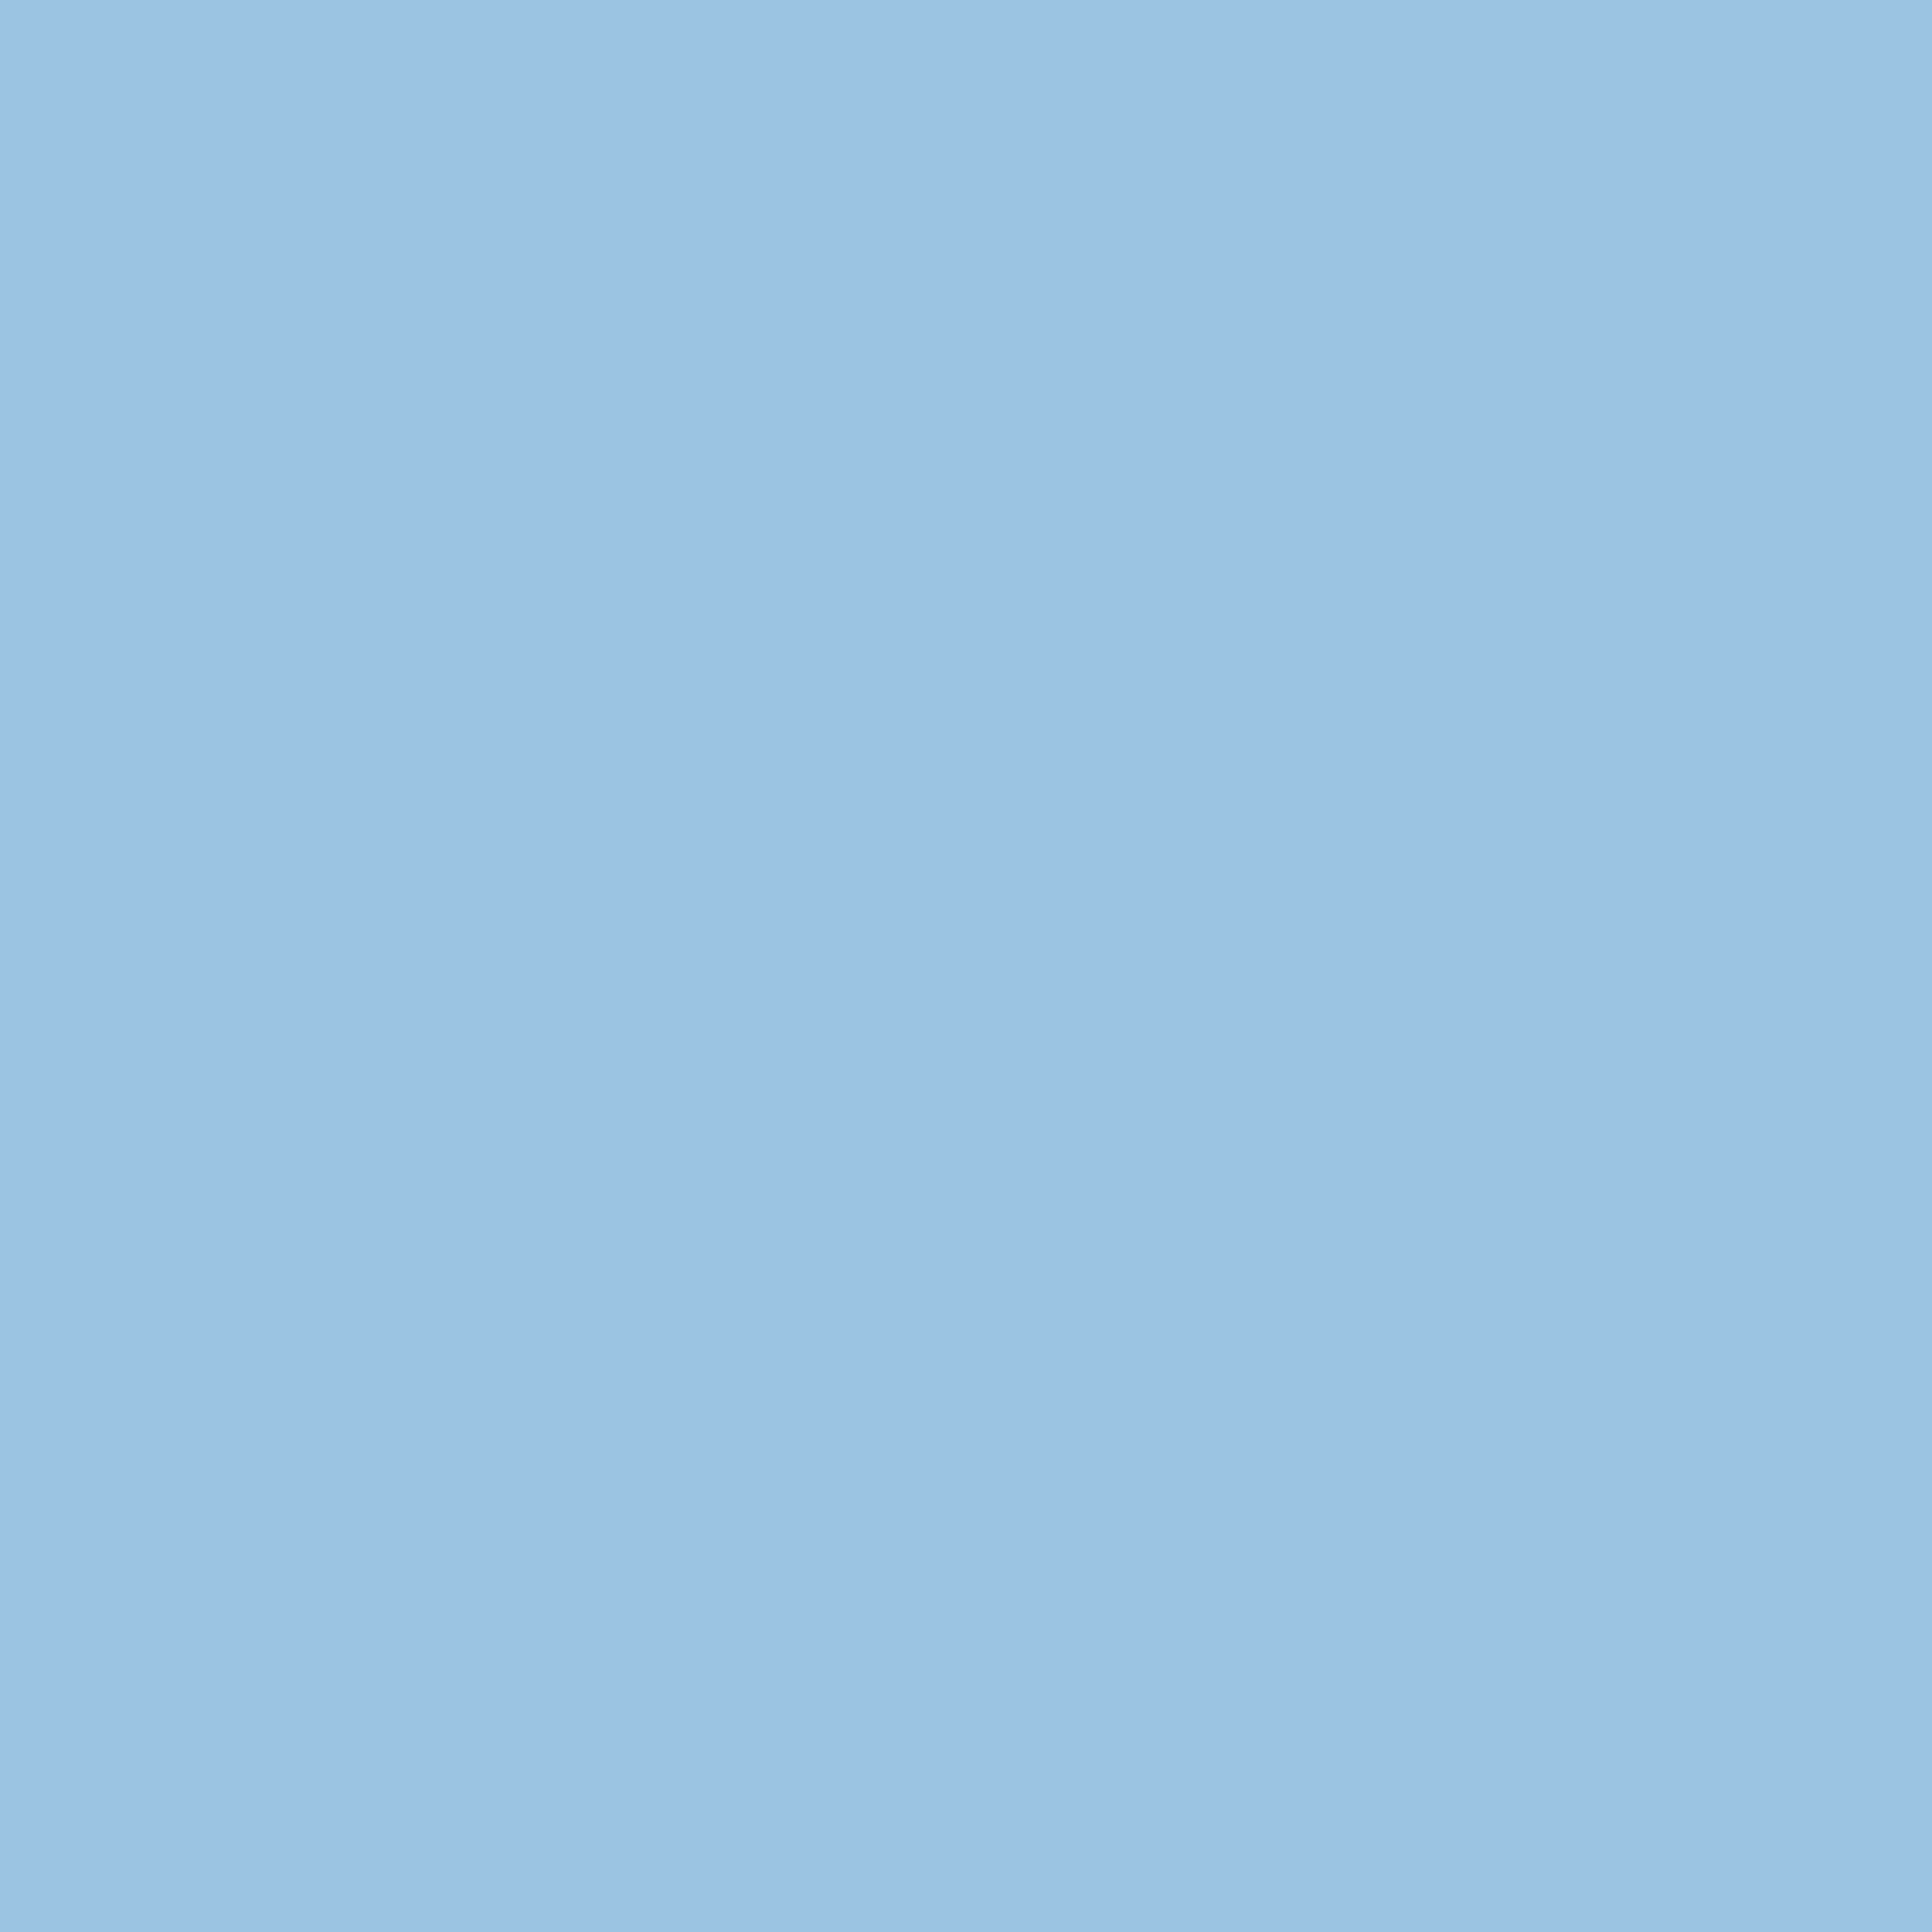 3600x3600 Pale Cerulean Solid Color Background